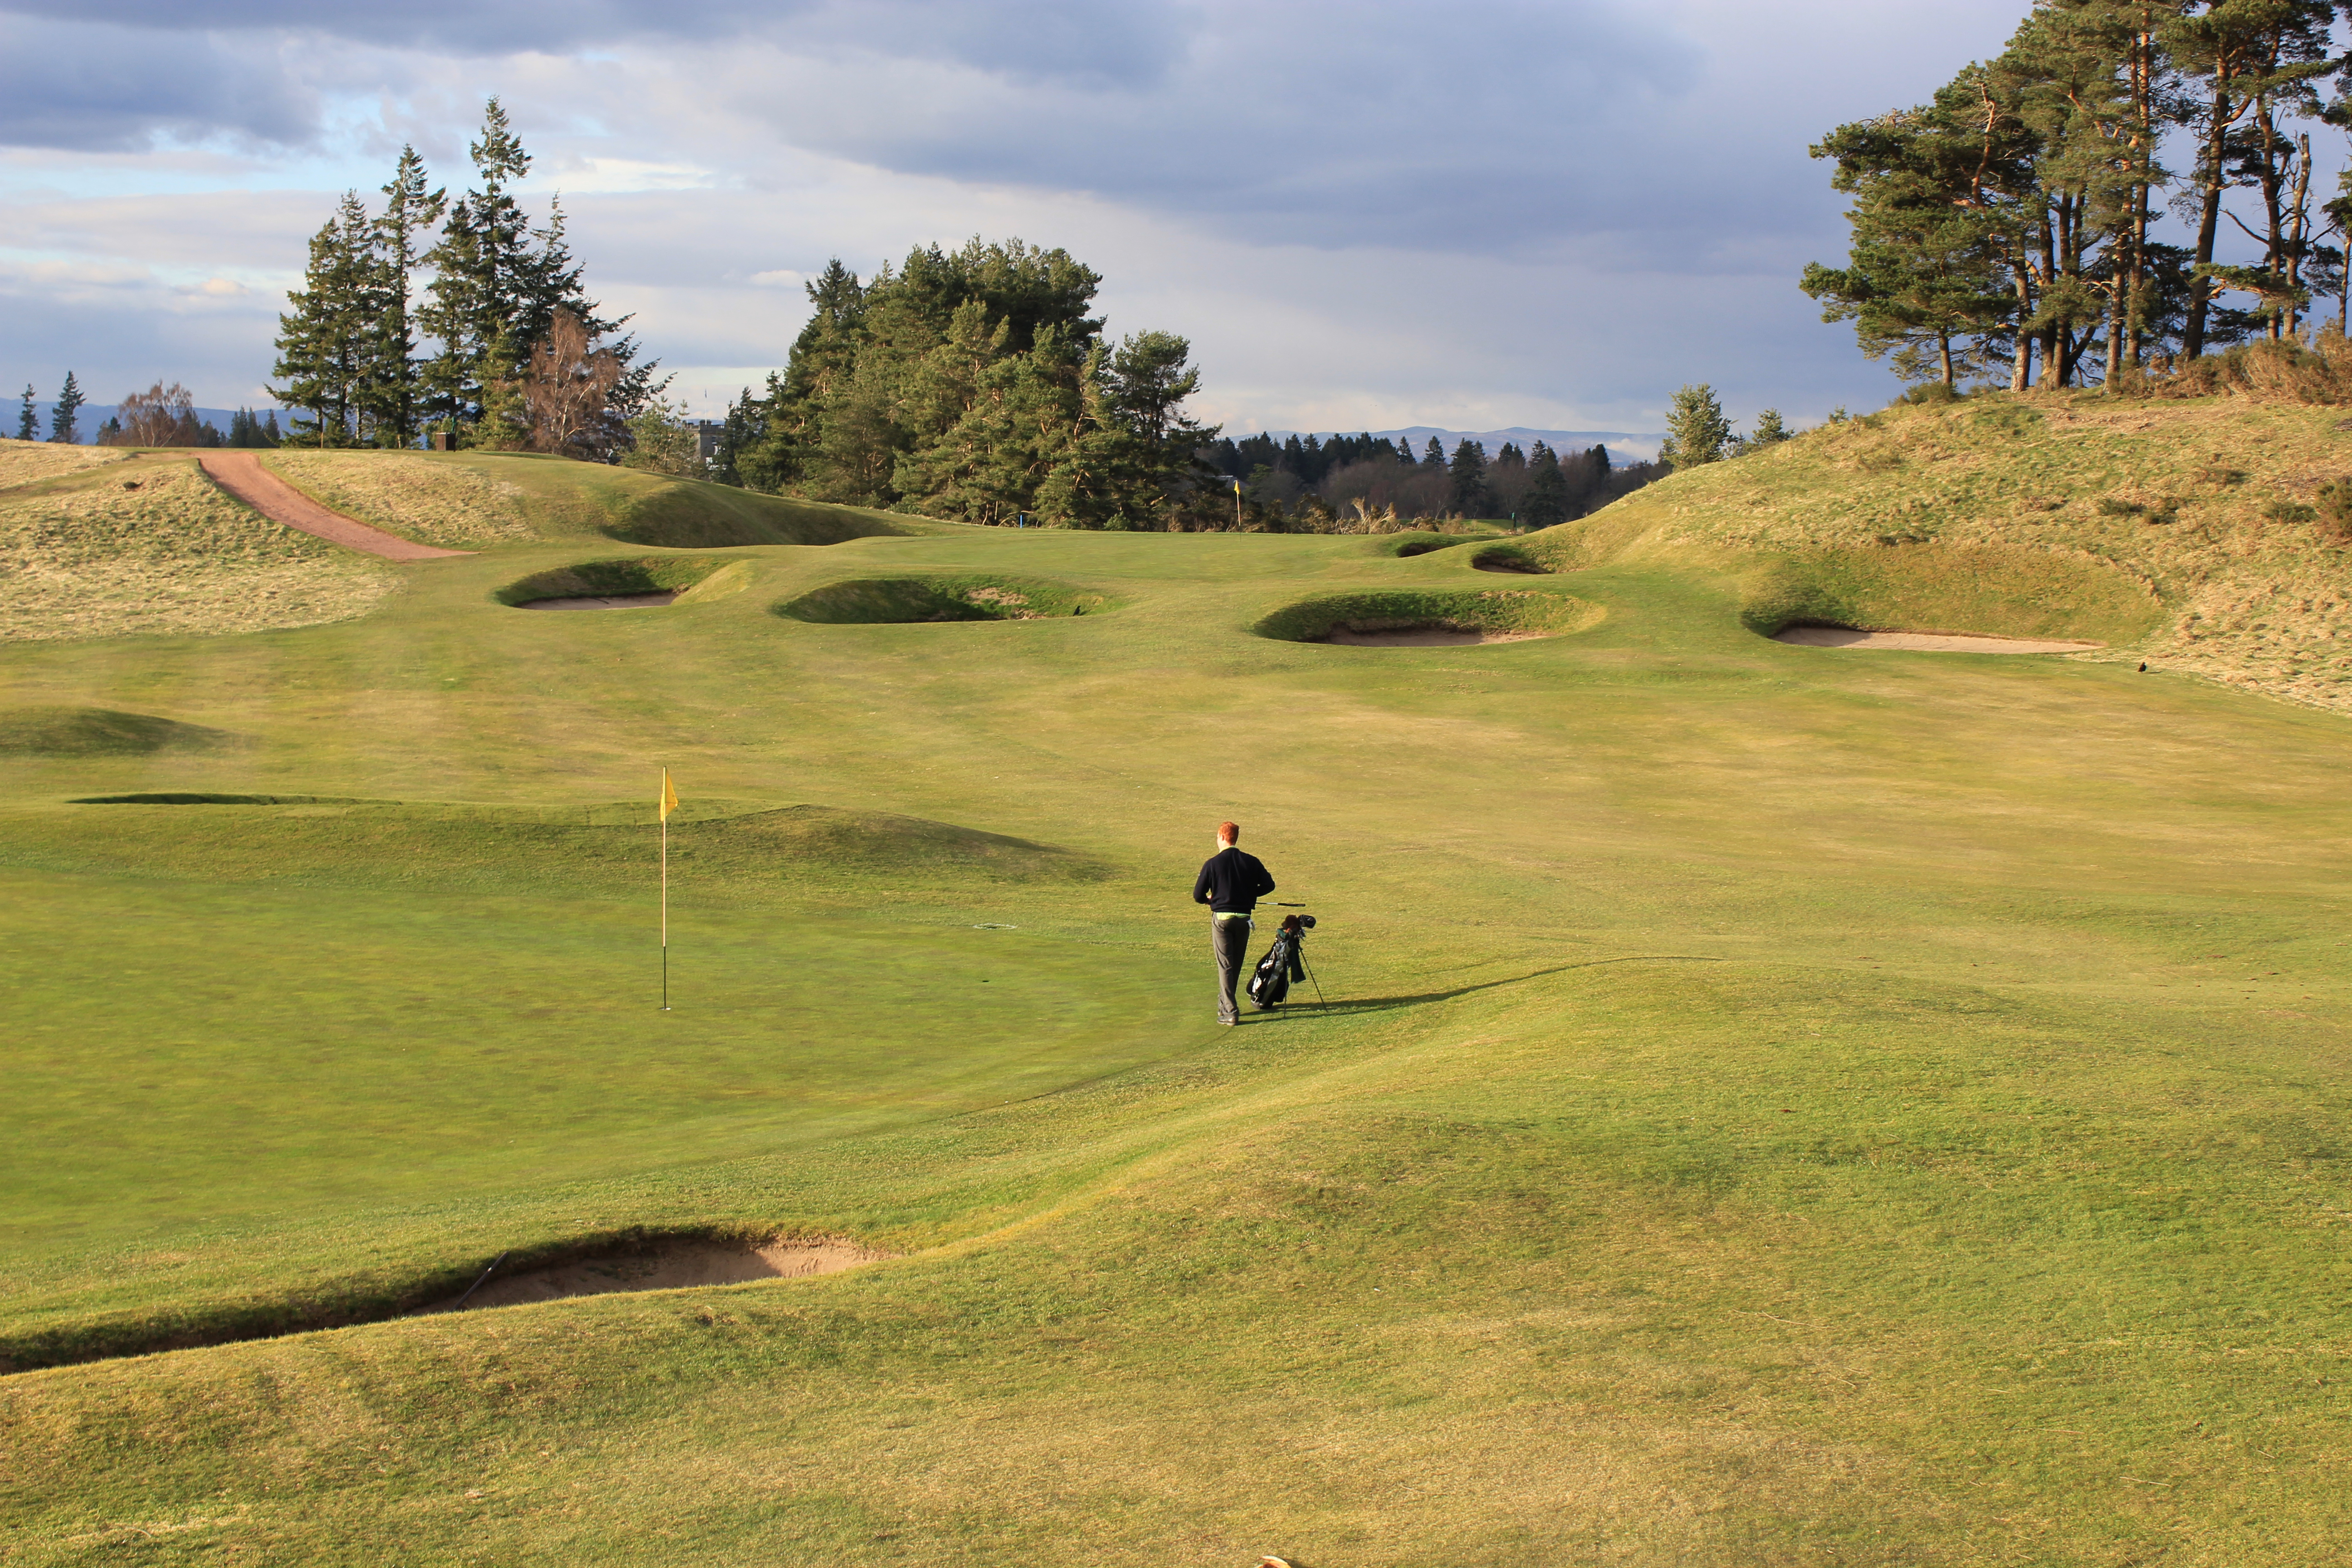 Gleneagles Centenary Kings Courses Review Graylyn Loomis Piping Layout Course As I Rewrite This Conclusion Four Years After Initially Published The Post Know That All Three Are Now In Much Better Condition